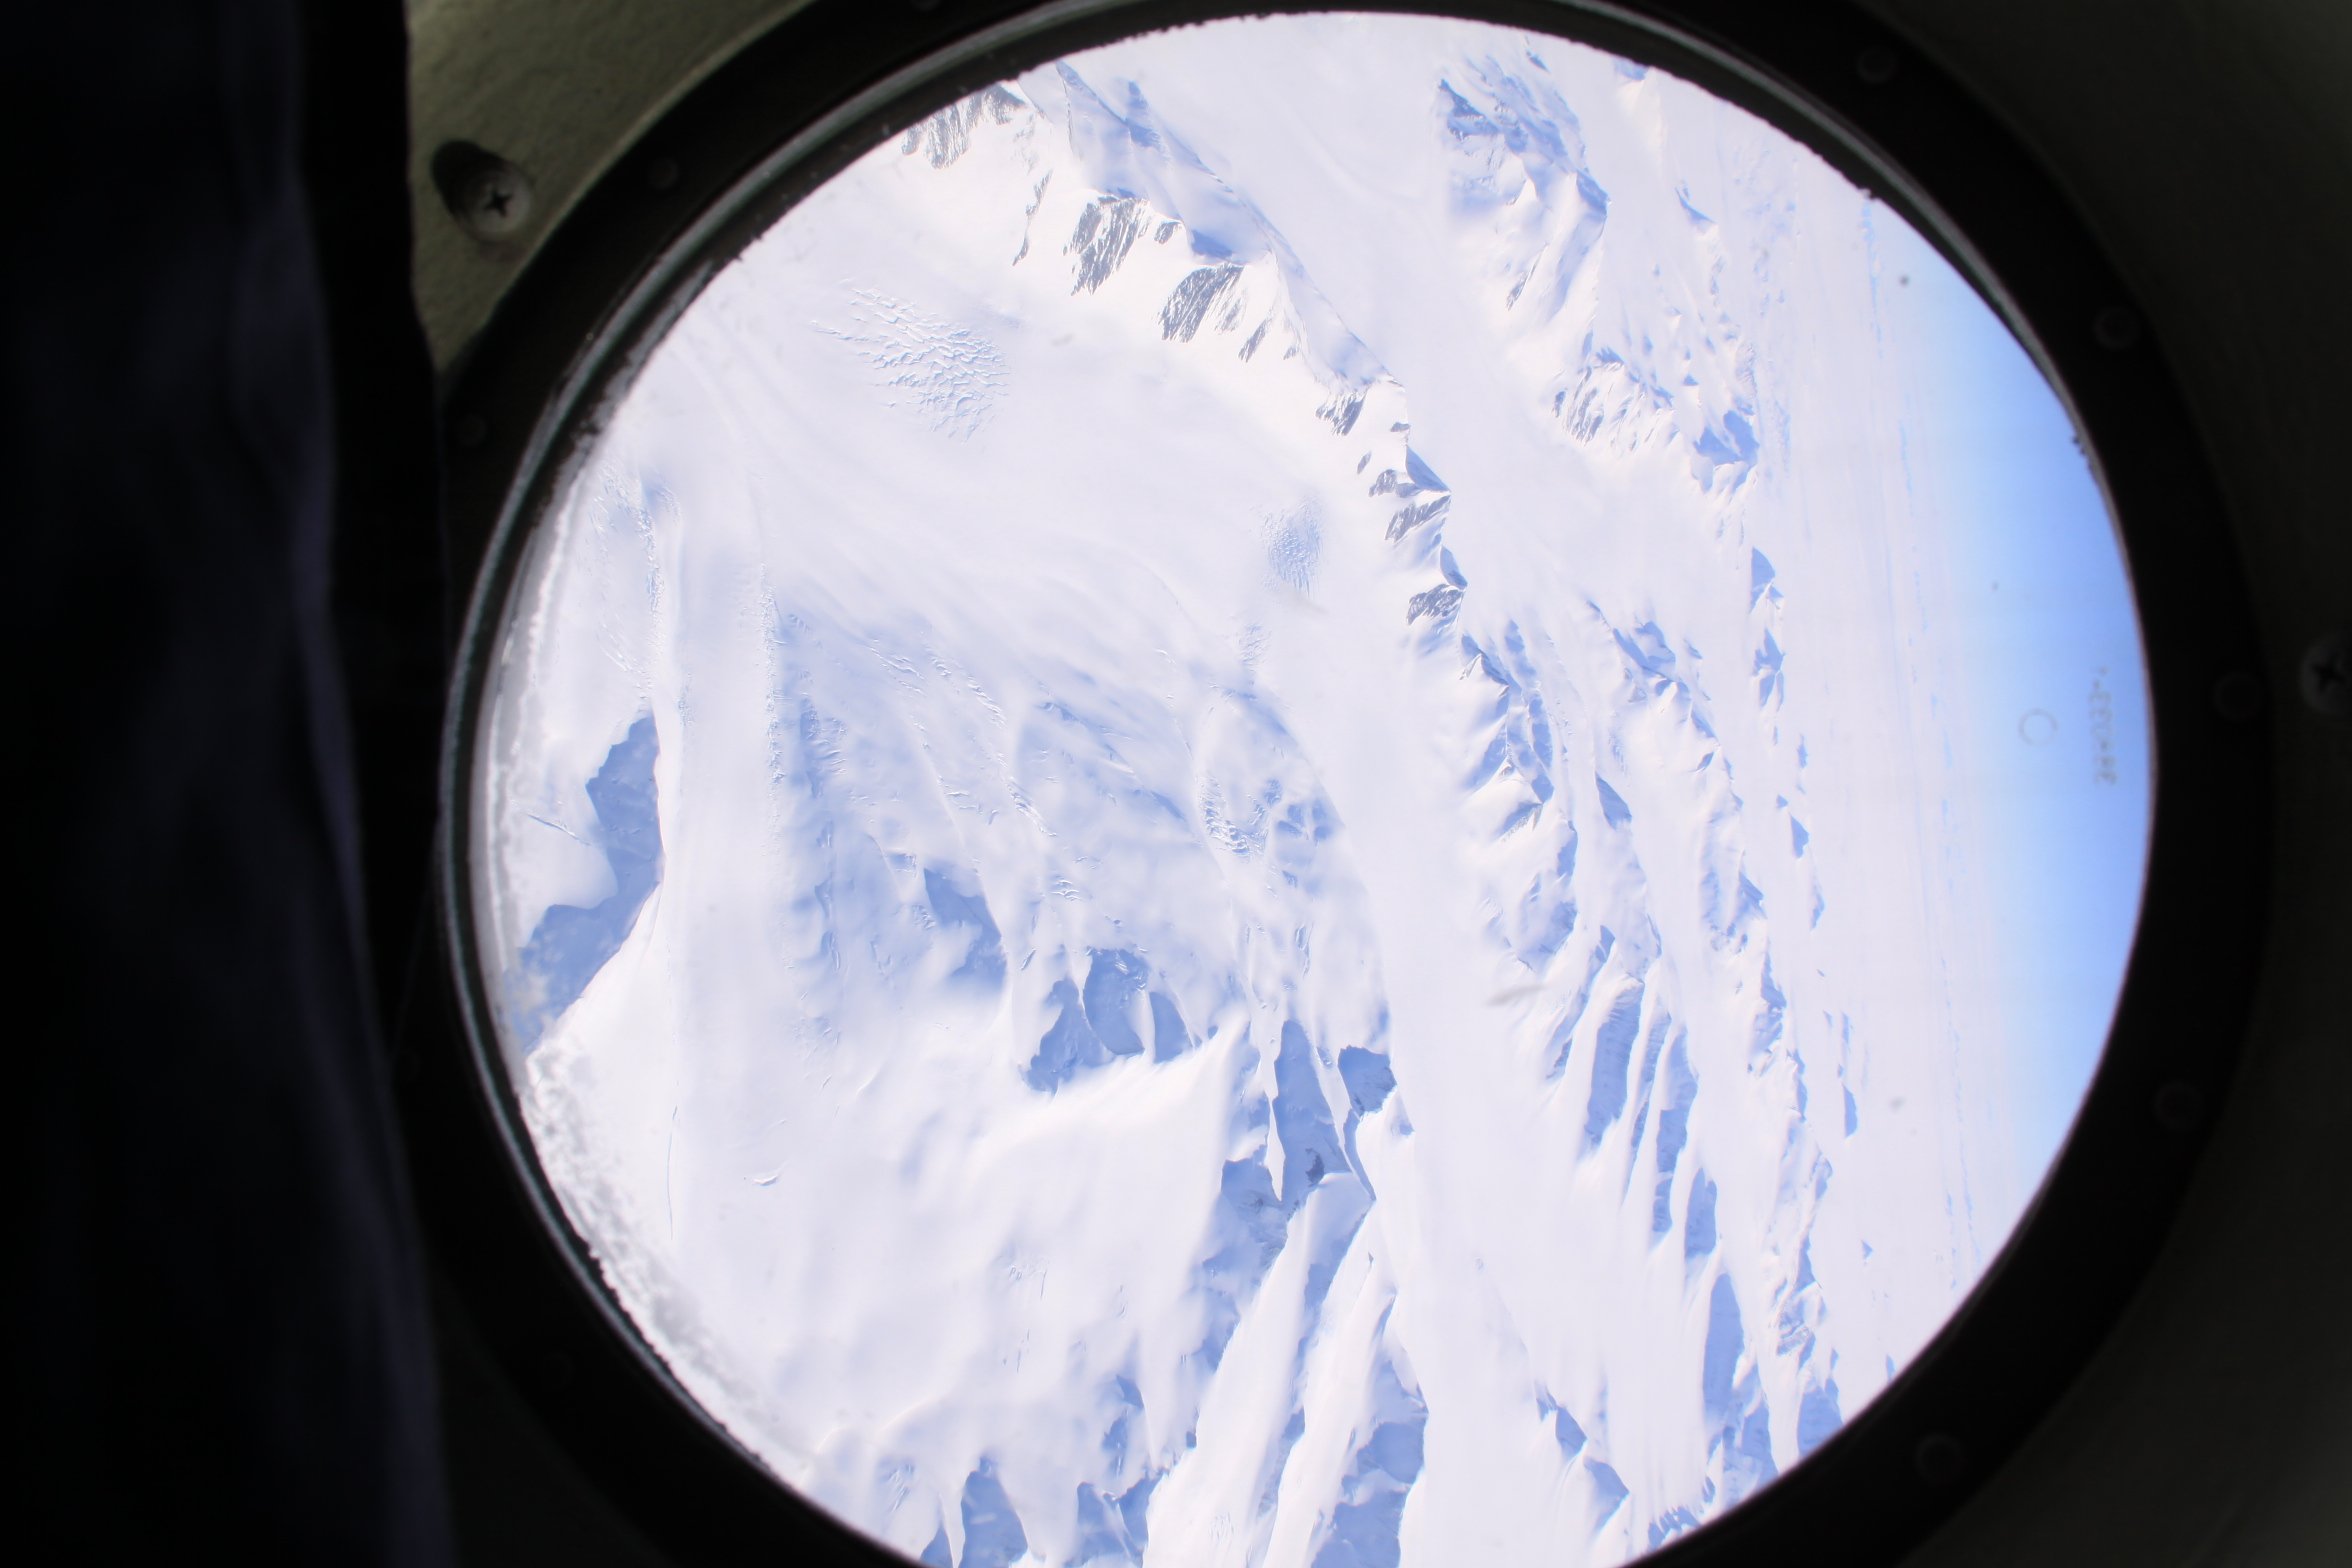 First sight of Antarctica